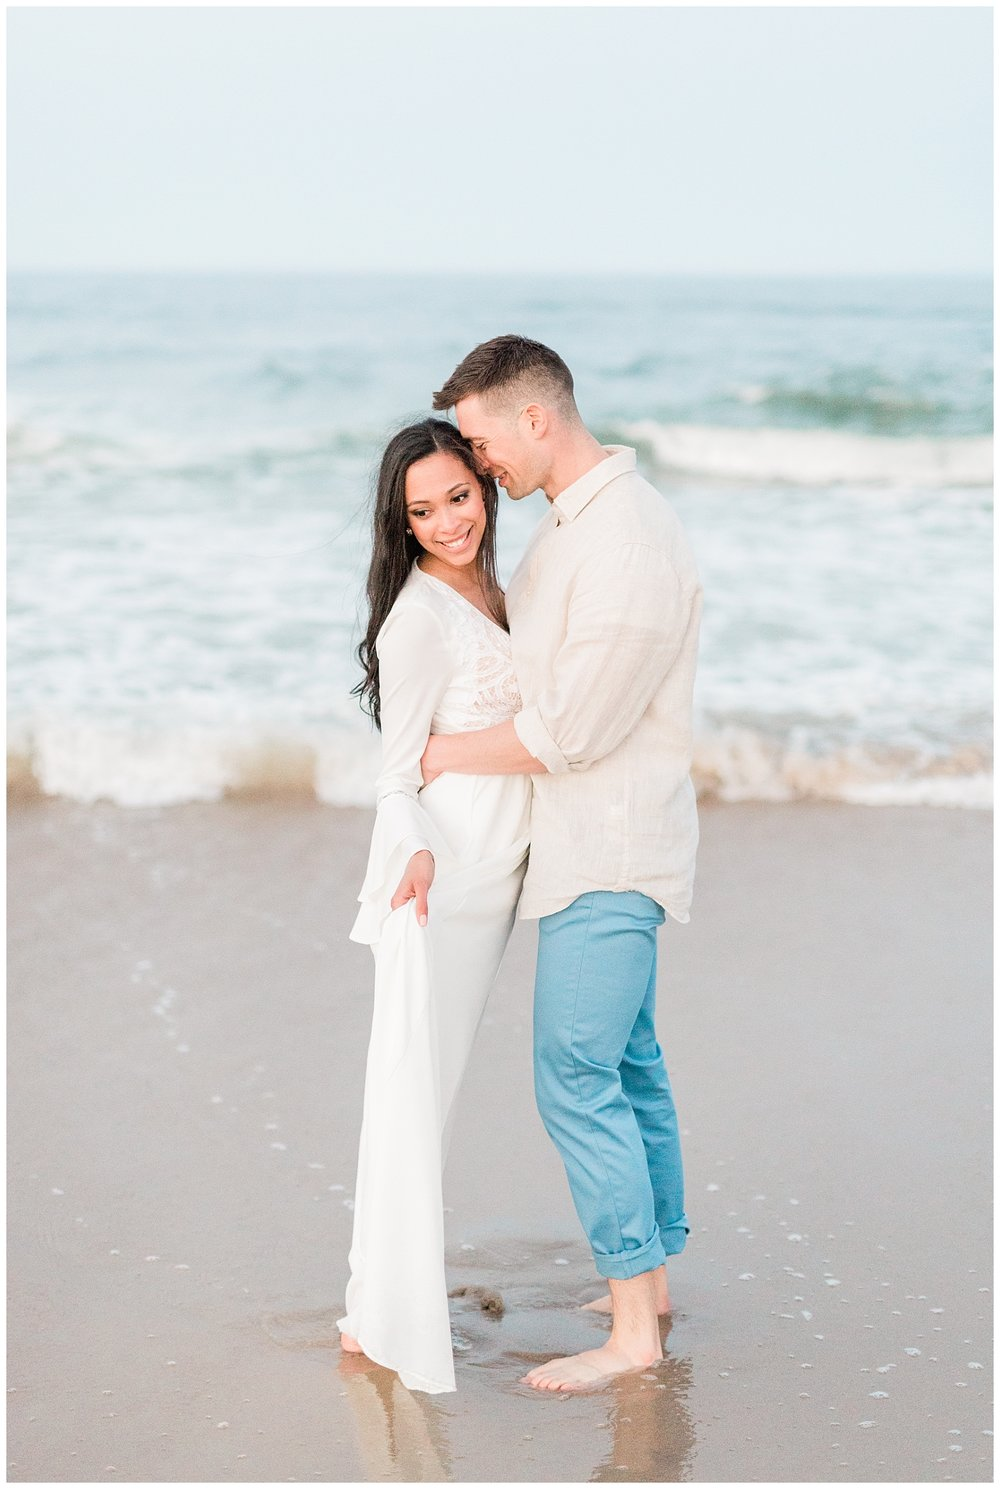 Spring-Lake-Divine-Park-Beach-Spring-Cherry-Blossom-NJ-Engagement-Session-Photo_0075.jpg